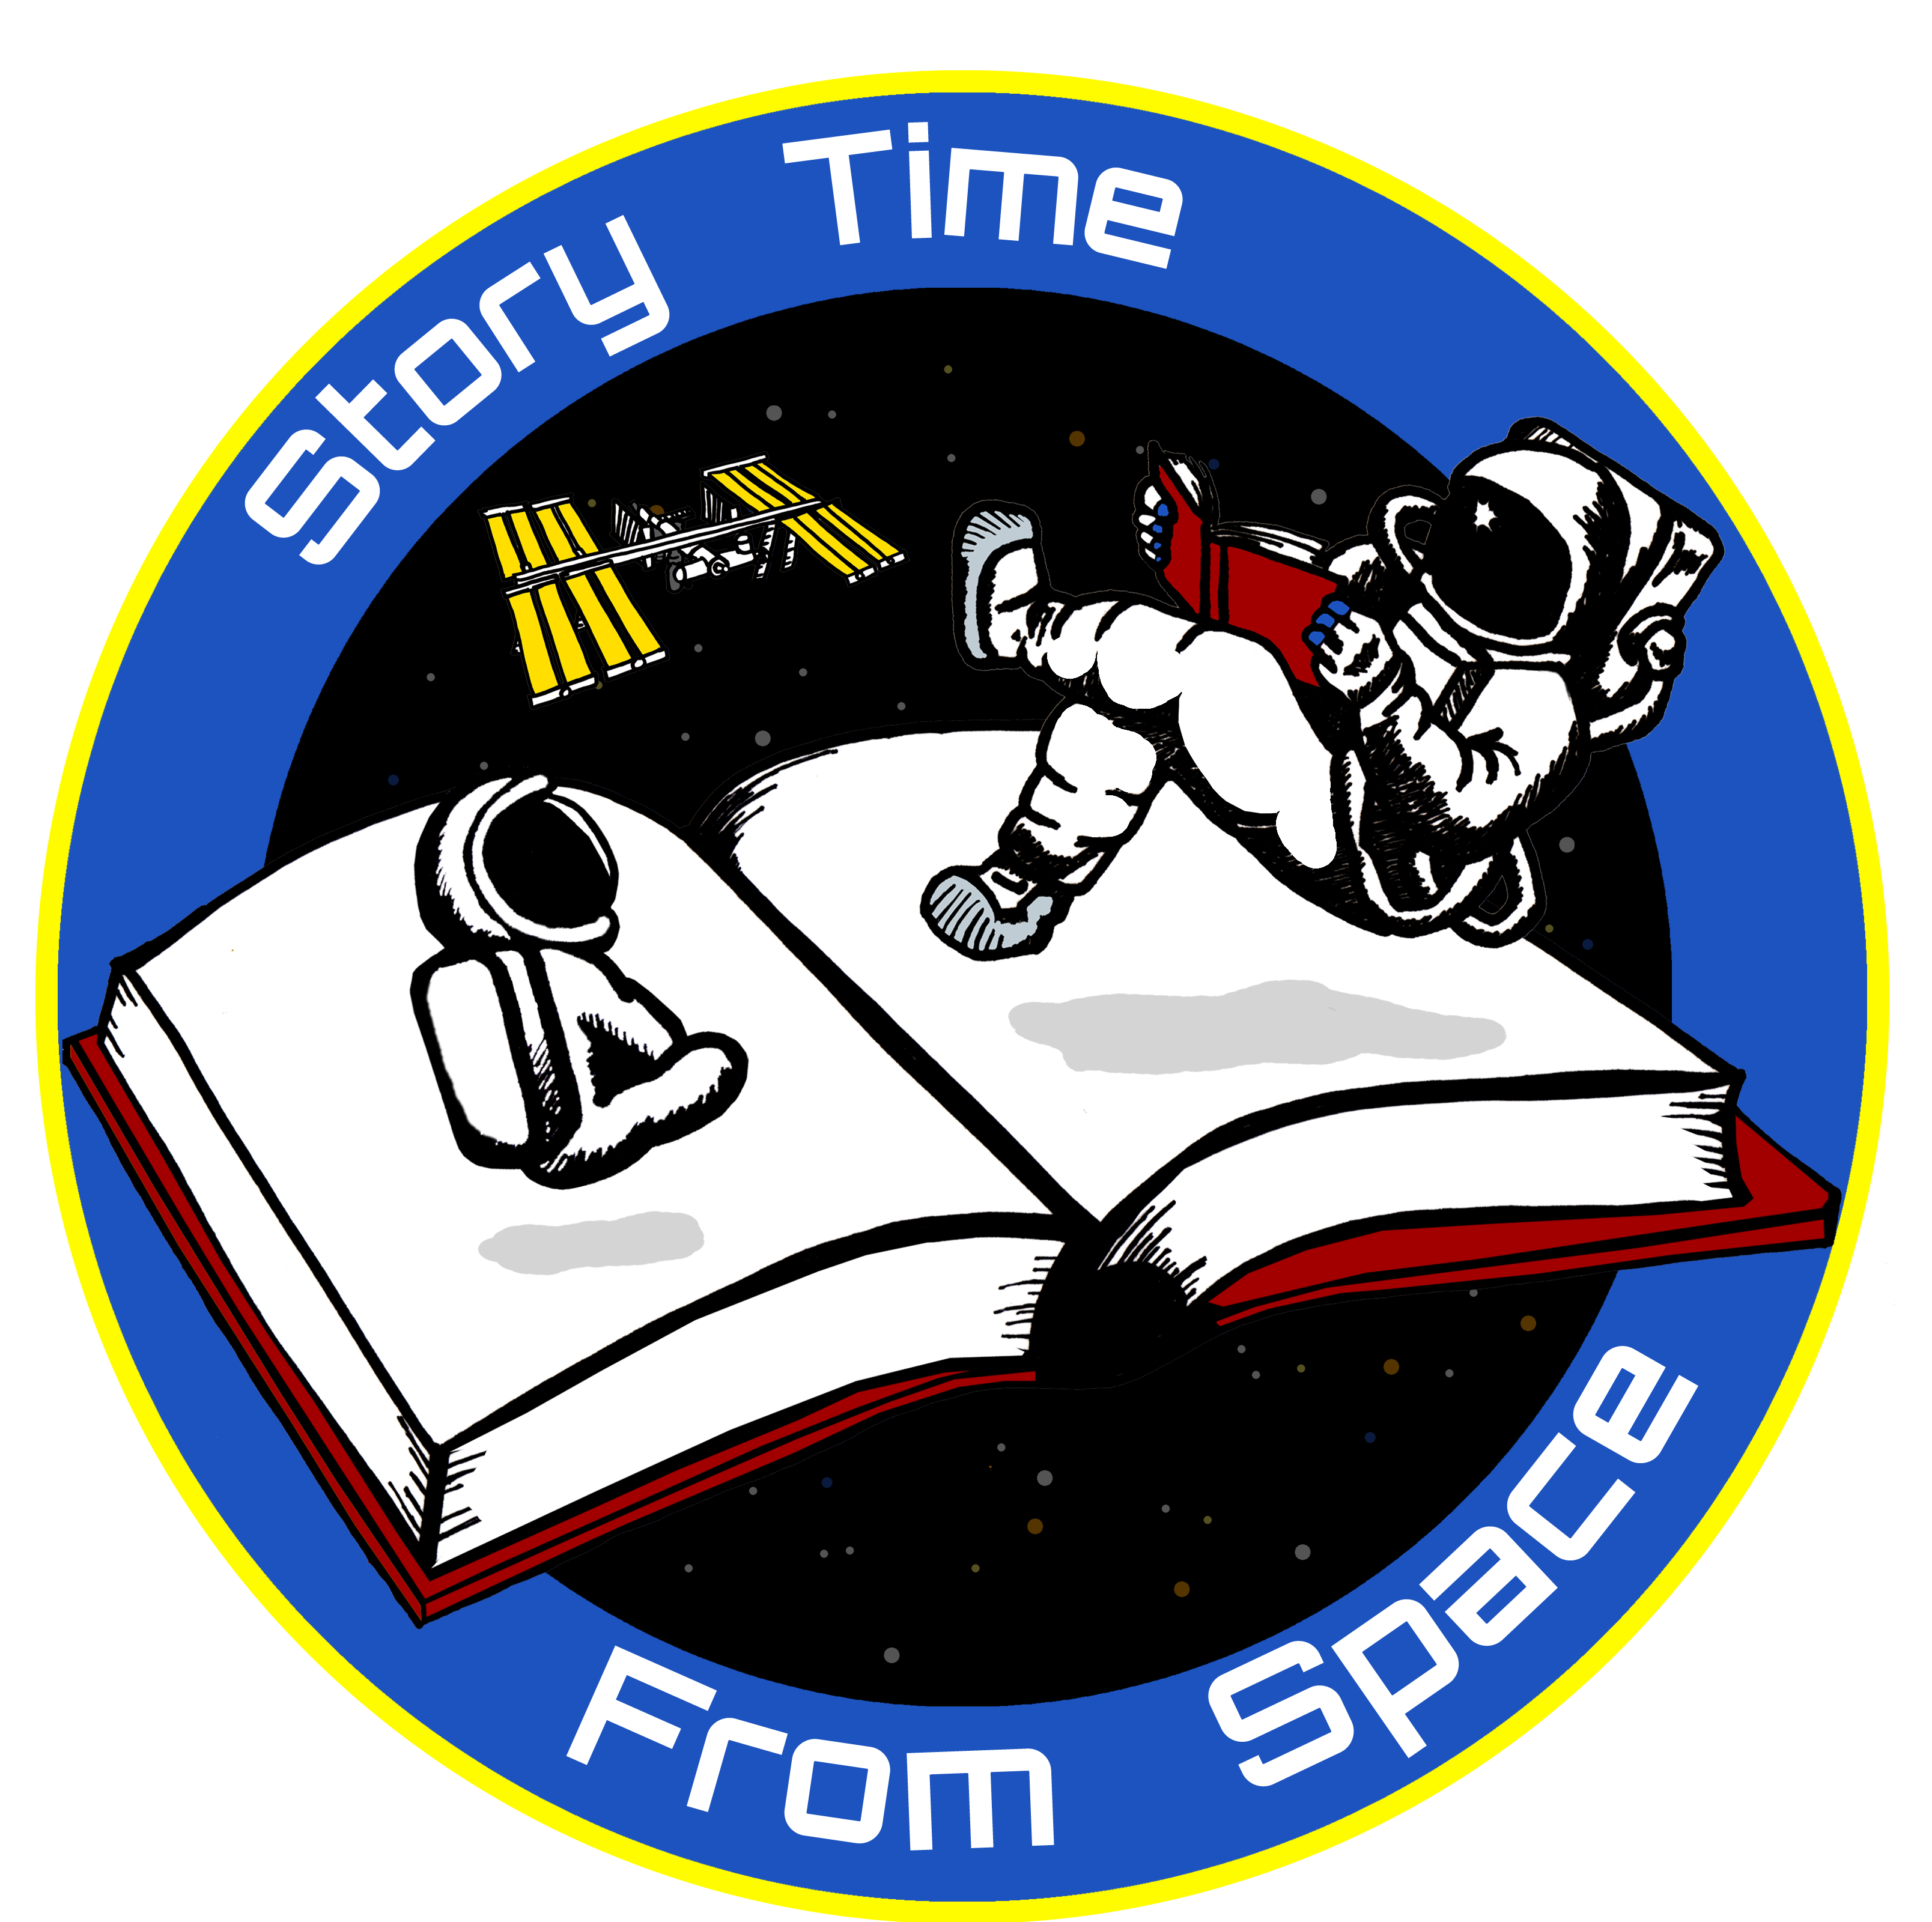 astronauts in space reading books - photo #24